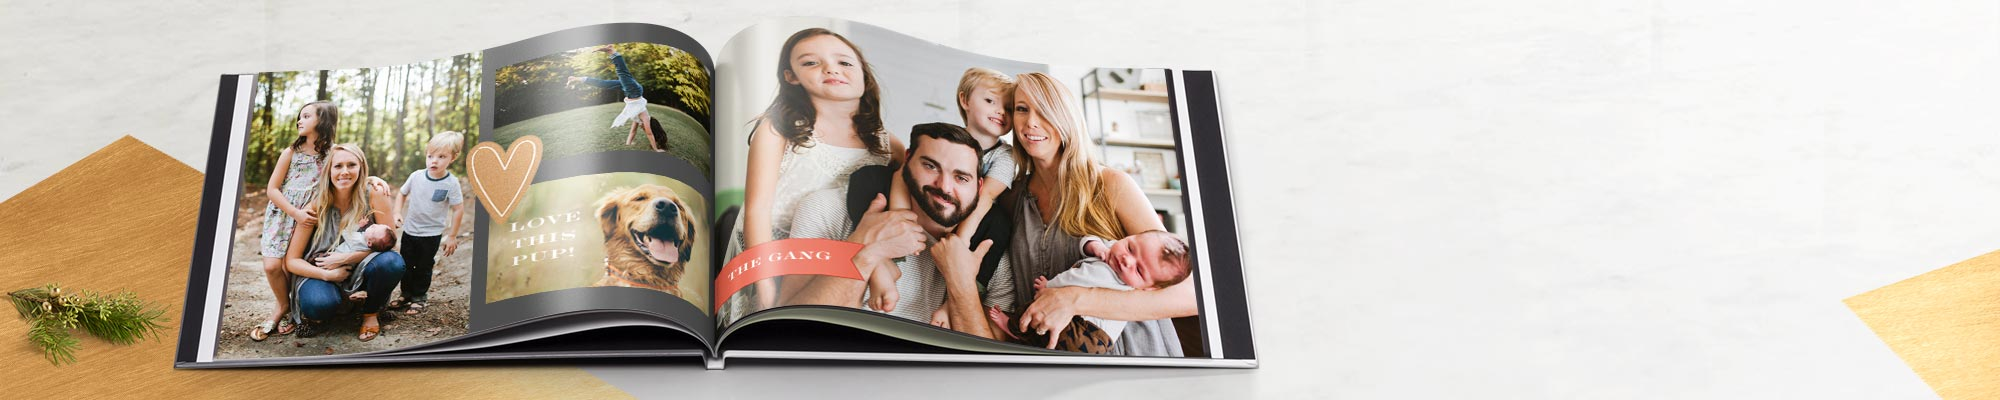 Photo Books : Relive all your special moments with a quality photo book - available in a variety of sizes, covers and styles.